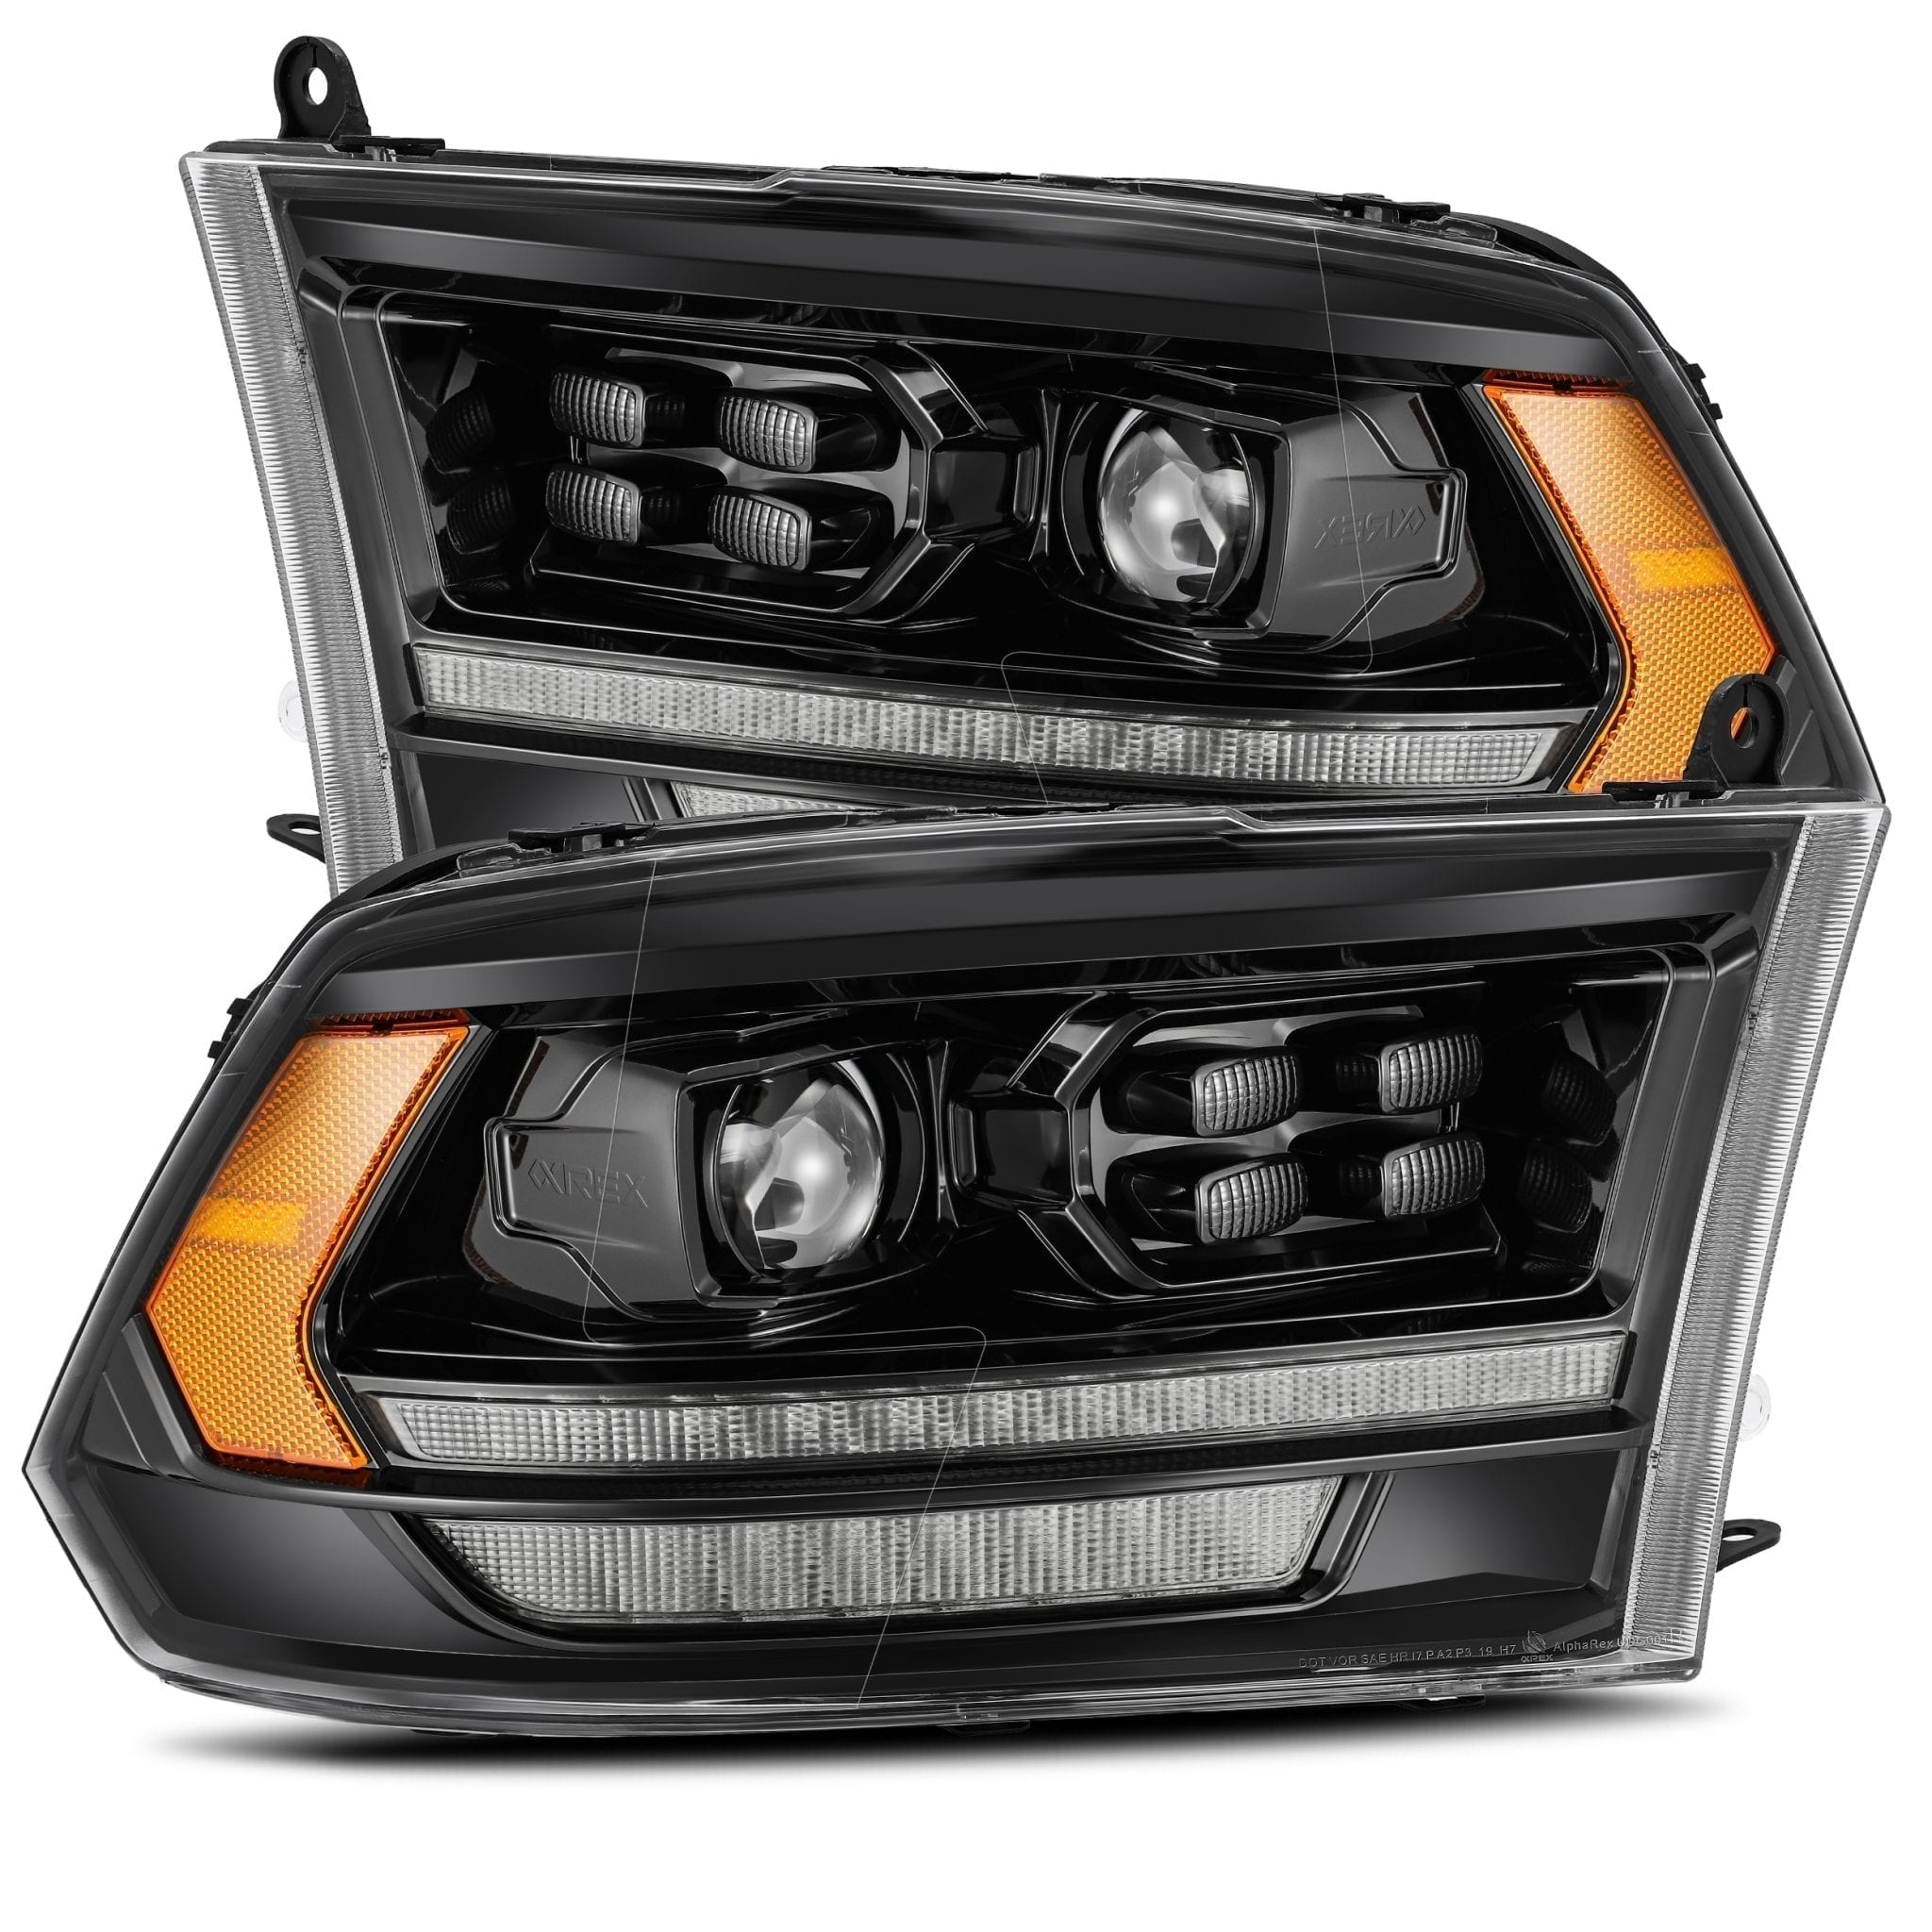 2009 2010 2011 2012 2013 2014 2015 2016 2017 2018 Dodge Ram 5th Gen 2500 Style PRO-Series Projector Headlights Mid-Night Black